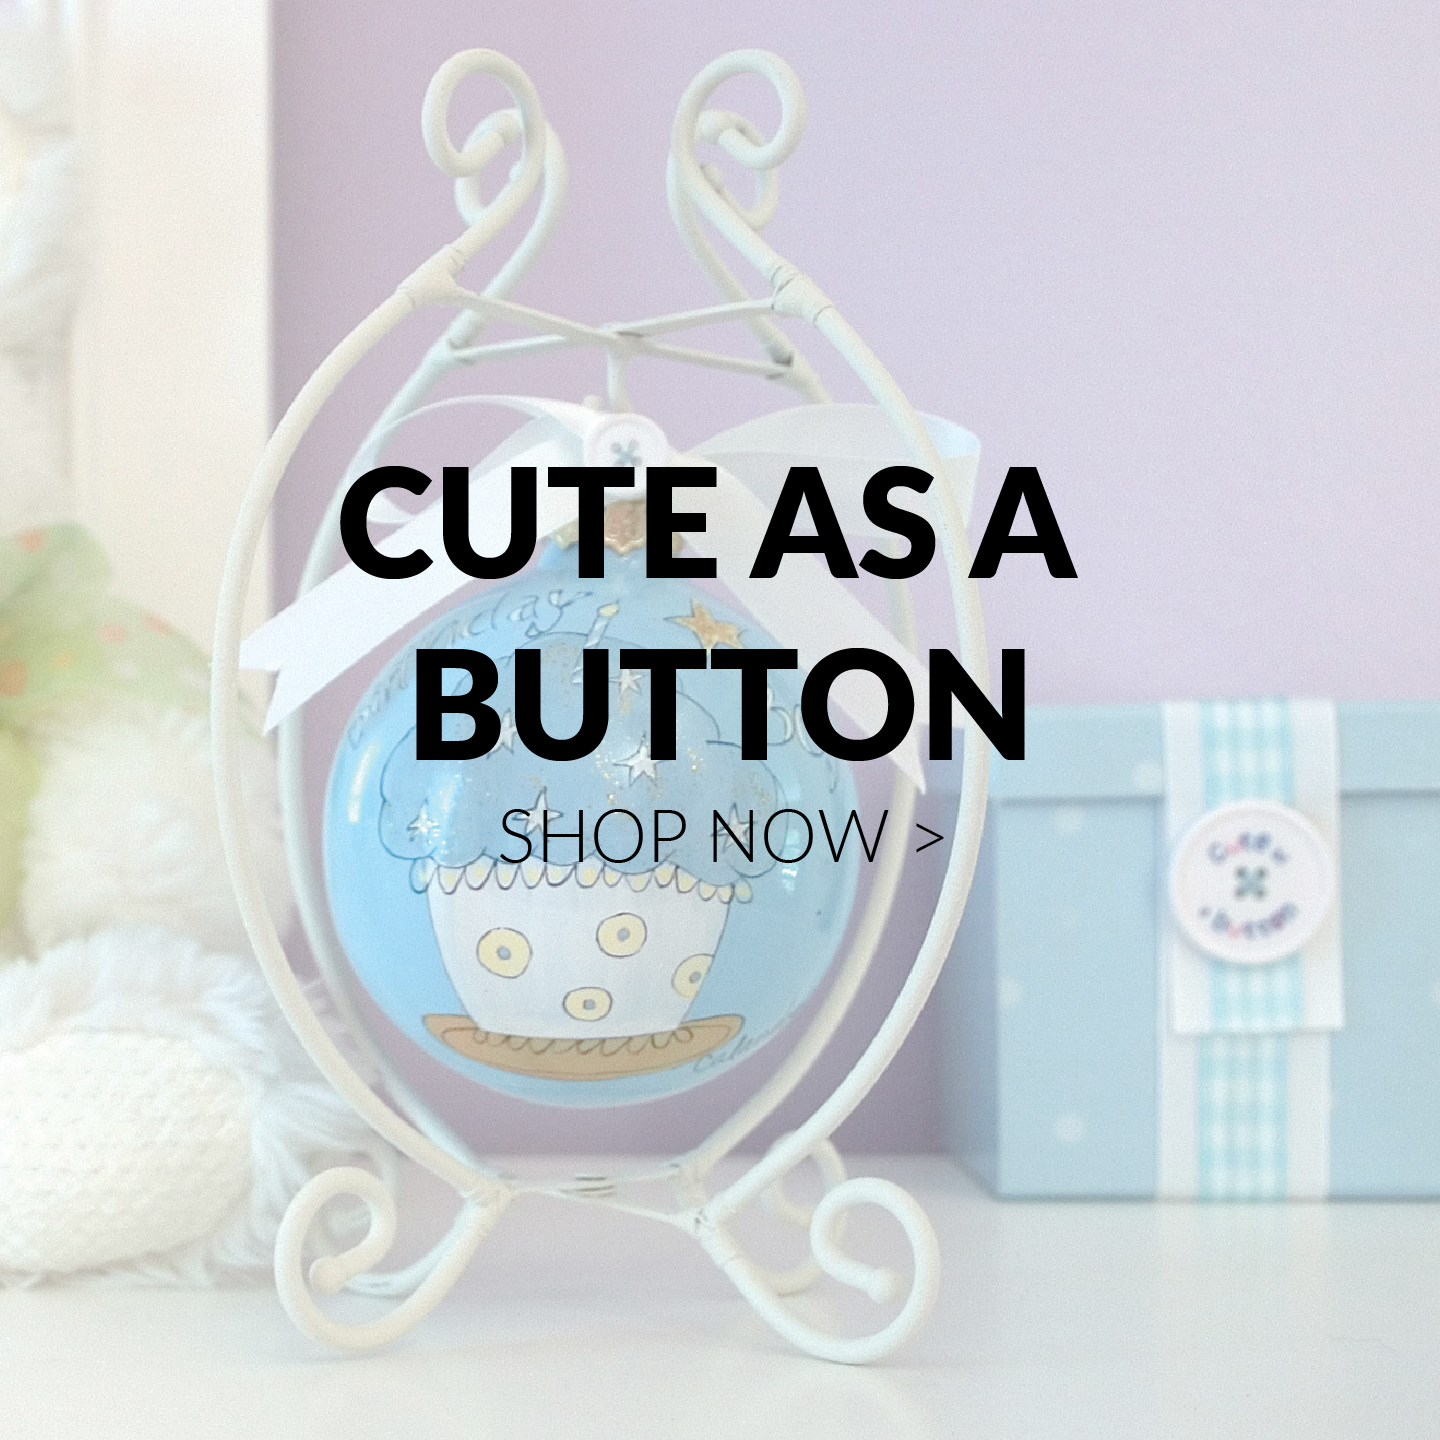 Cute as a Button